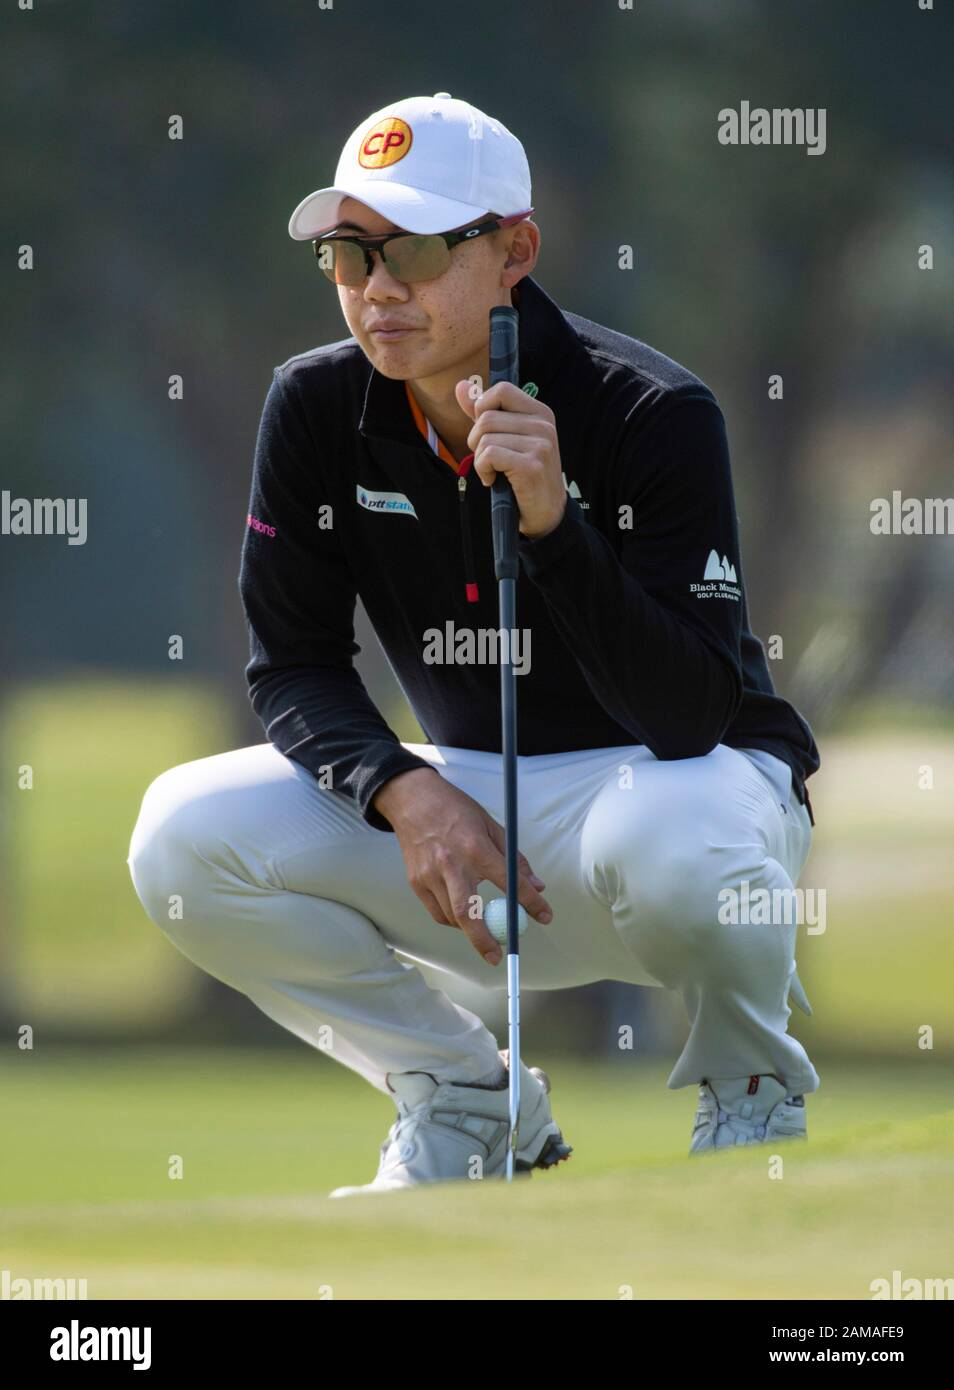 Fanling, Hong Kong, China. 12th Jan 2020.  61st Hong Kong Open Golf Final Round. Jazz Janewattananond of Thailand on the 3rd green. Credit: HKPhotoNews/Alamy Live News Stock Photo